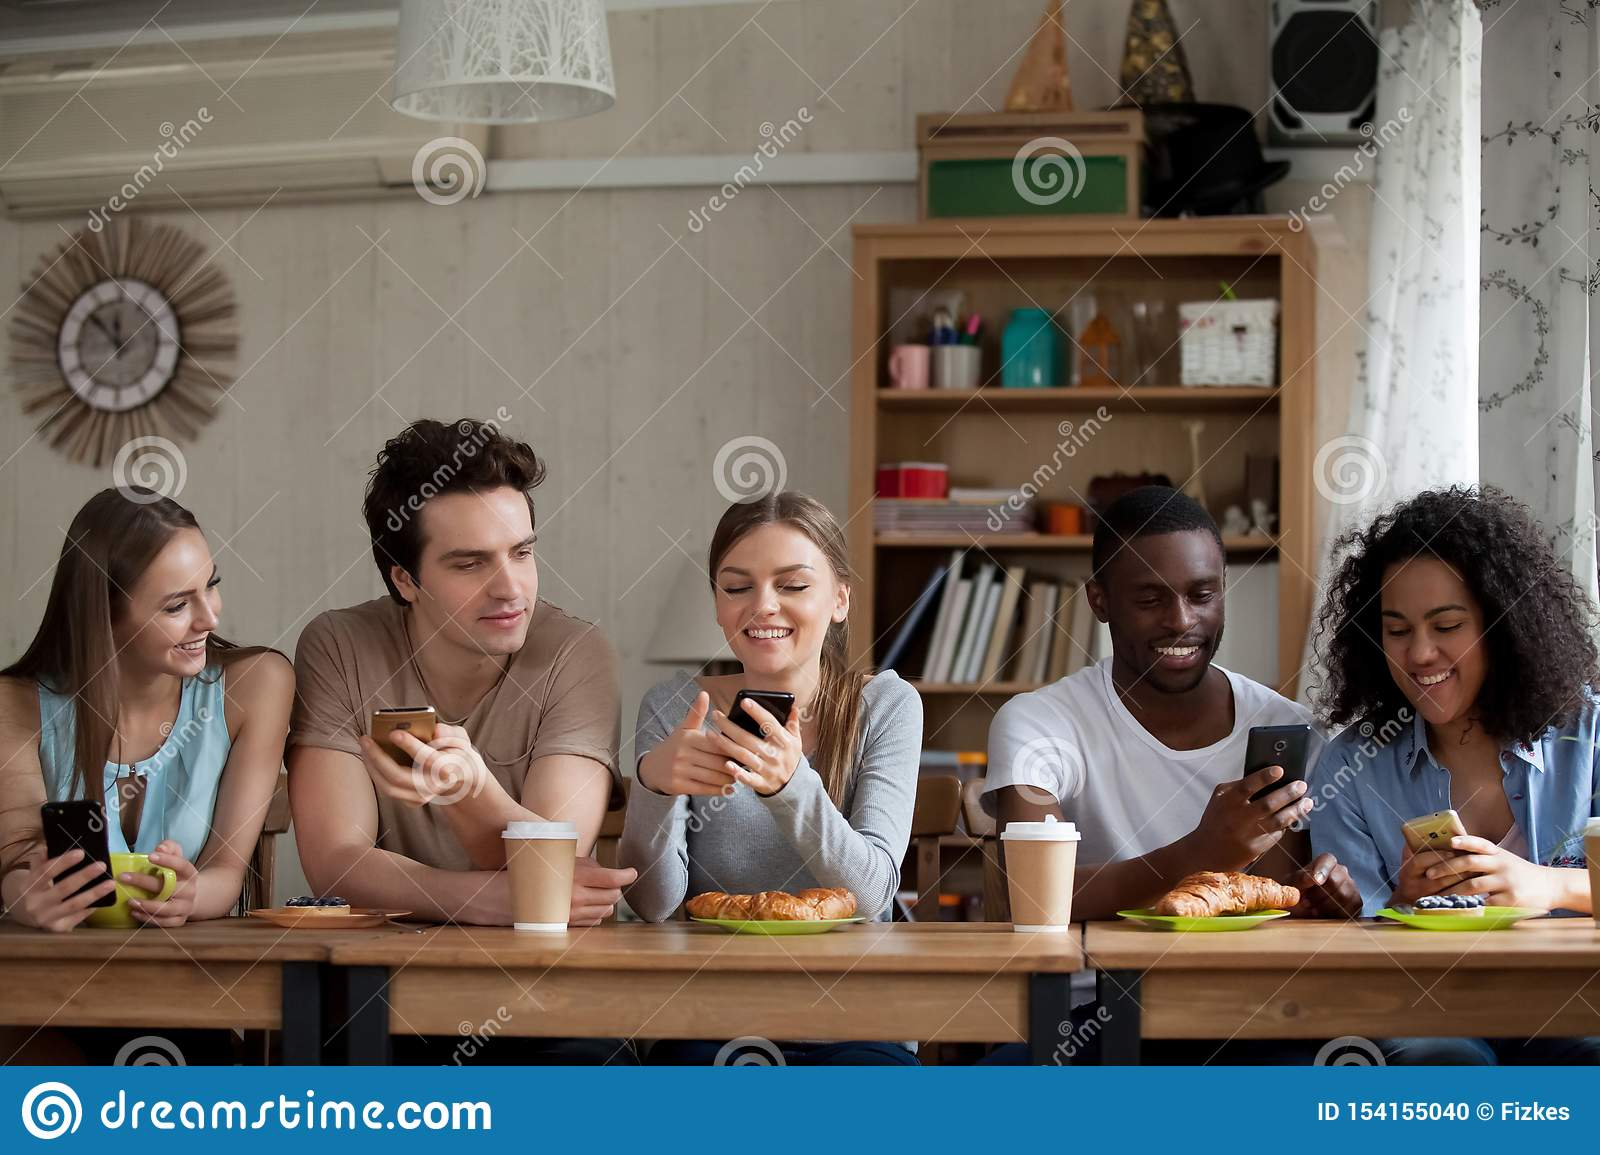 Smiling diverse young women and men using smartphones in cafe.